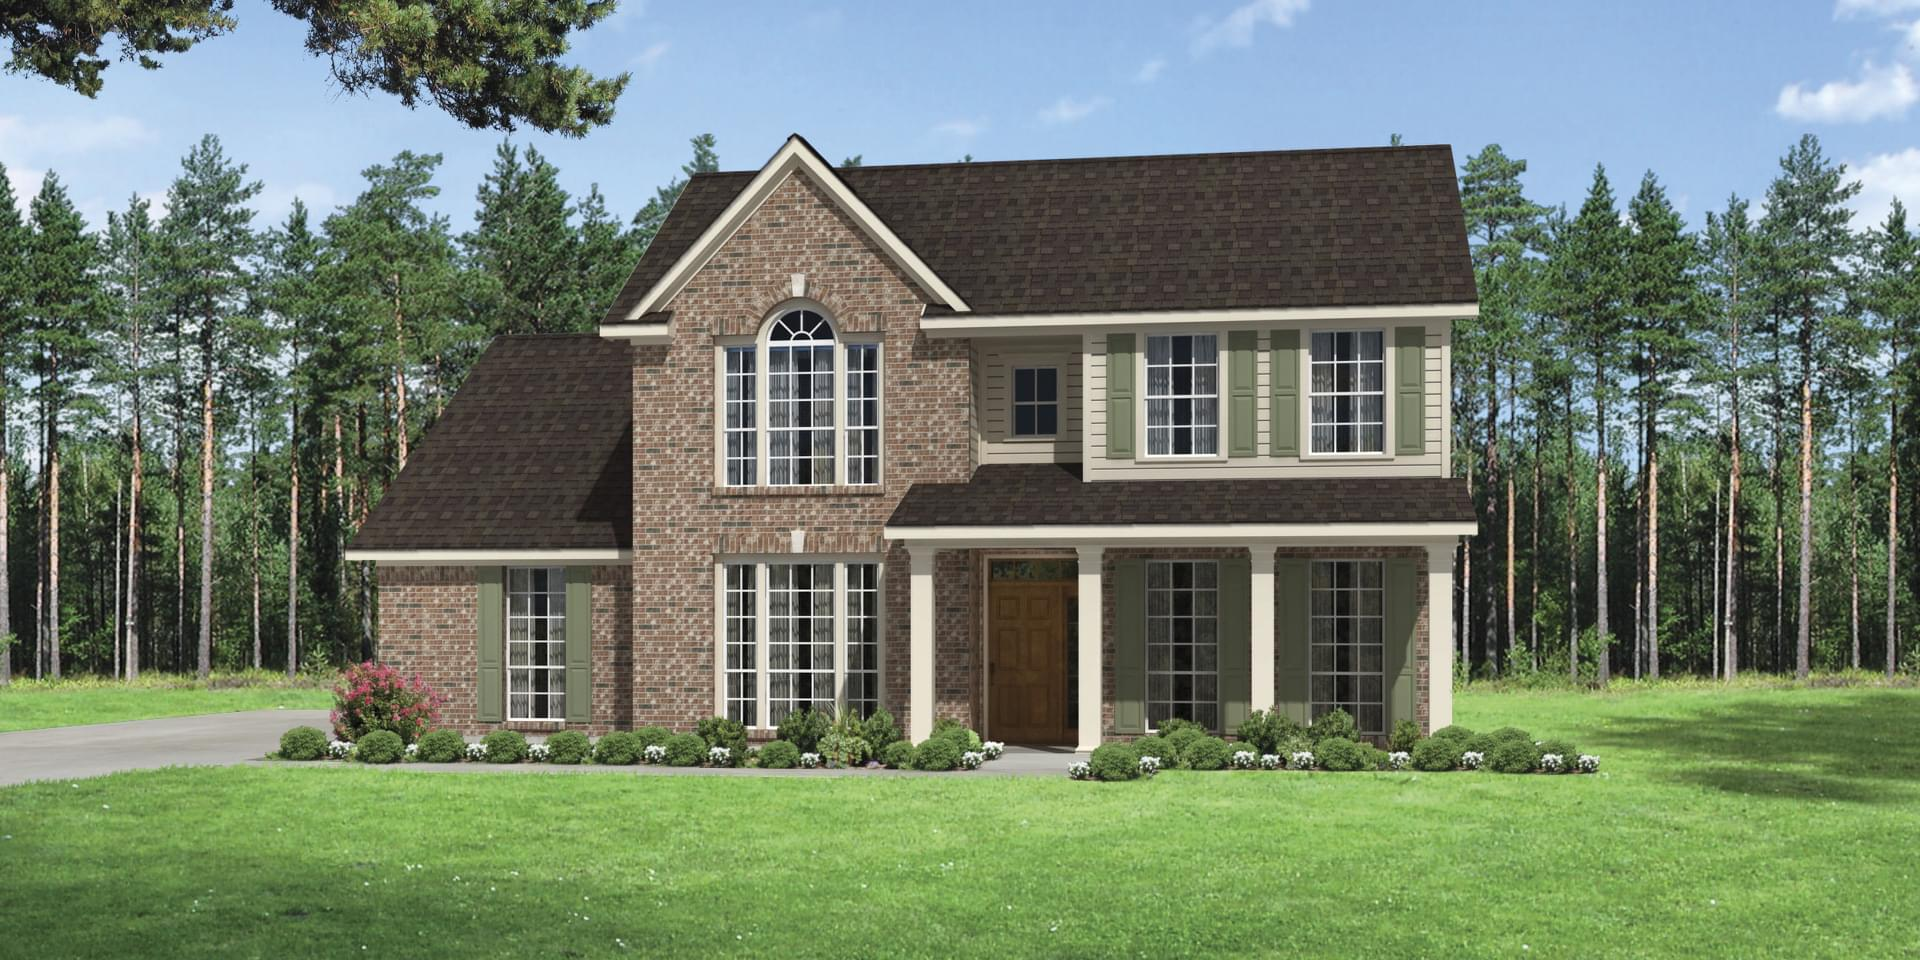 The Oxford Custom Home Plan from Tilson Homes